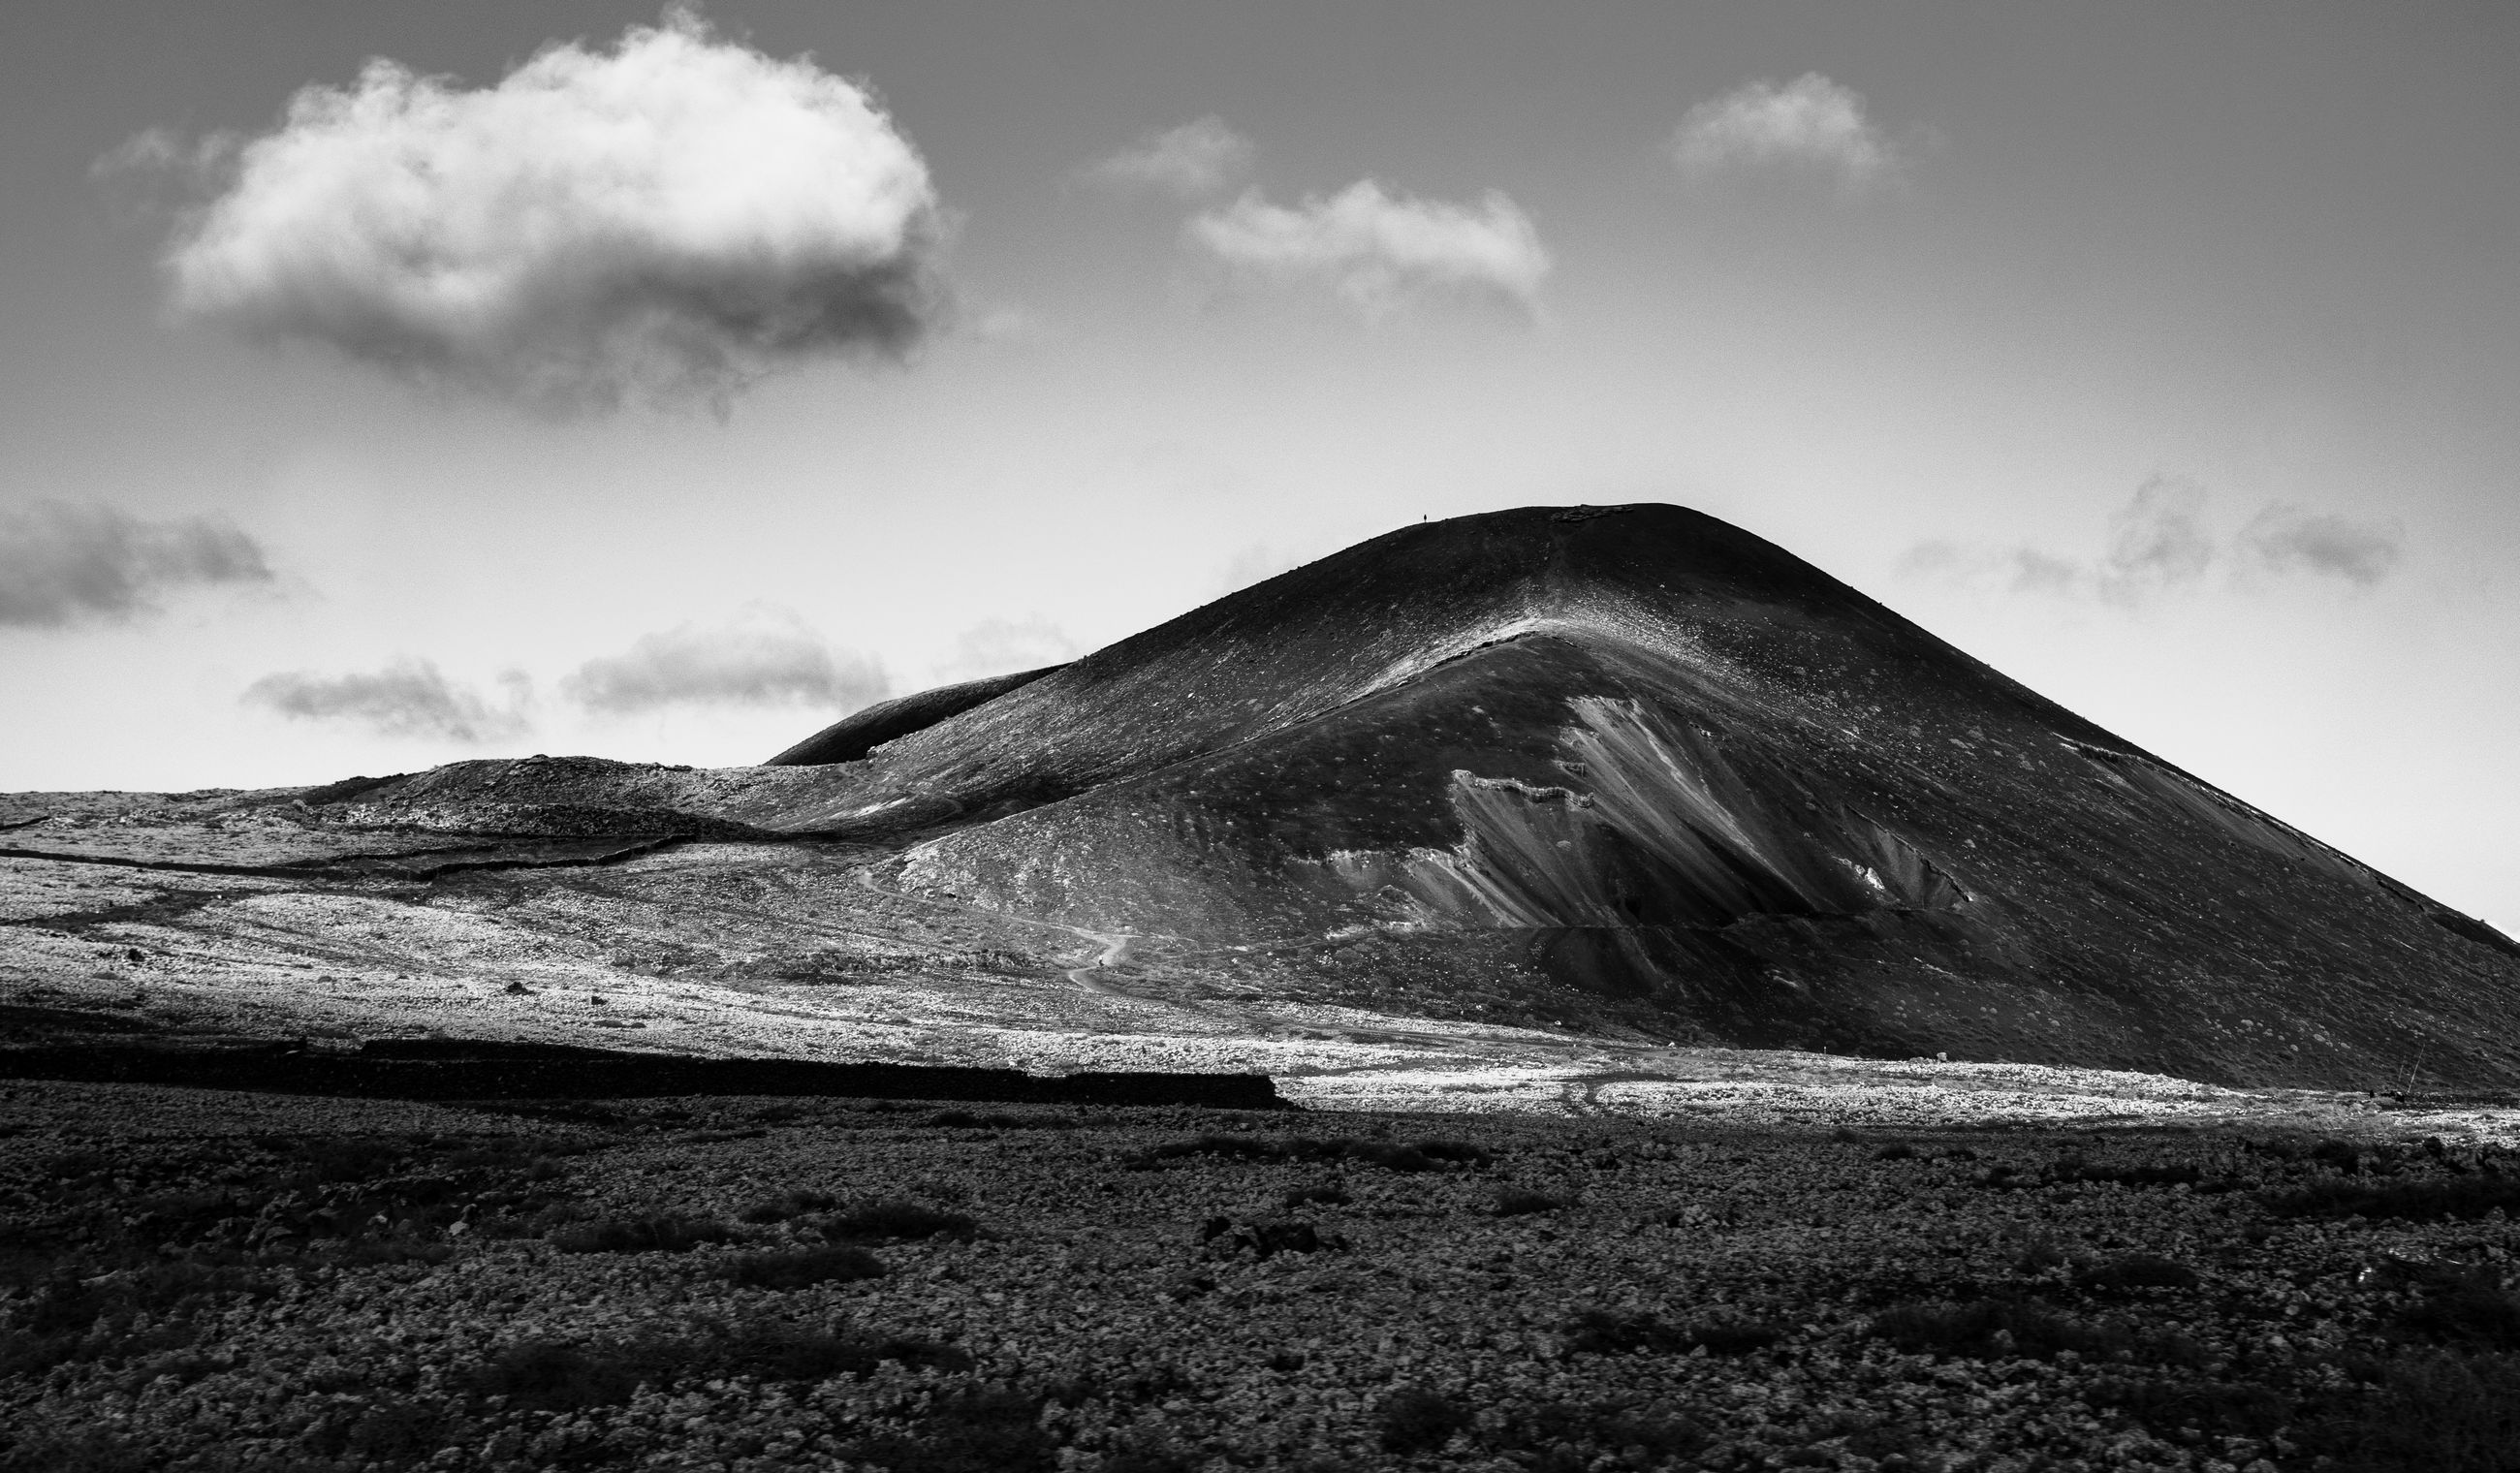 sky, cloud - sky, tranquil scene, scenics - nature, beauty in nature, no people, tranquility, mountain, landscape, non-urban scene, nature, day, environment, land, idyllic, remote, volcano, outdoors, geology, travel destinations, volcanic crater, mountain peak